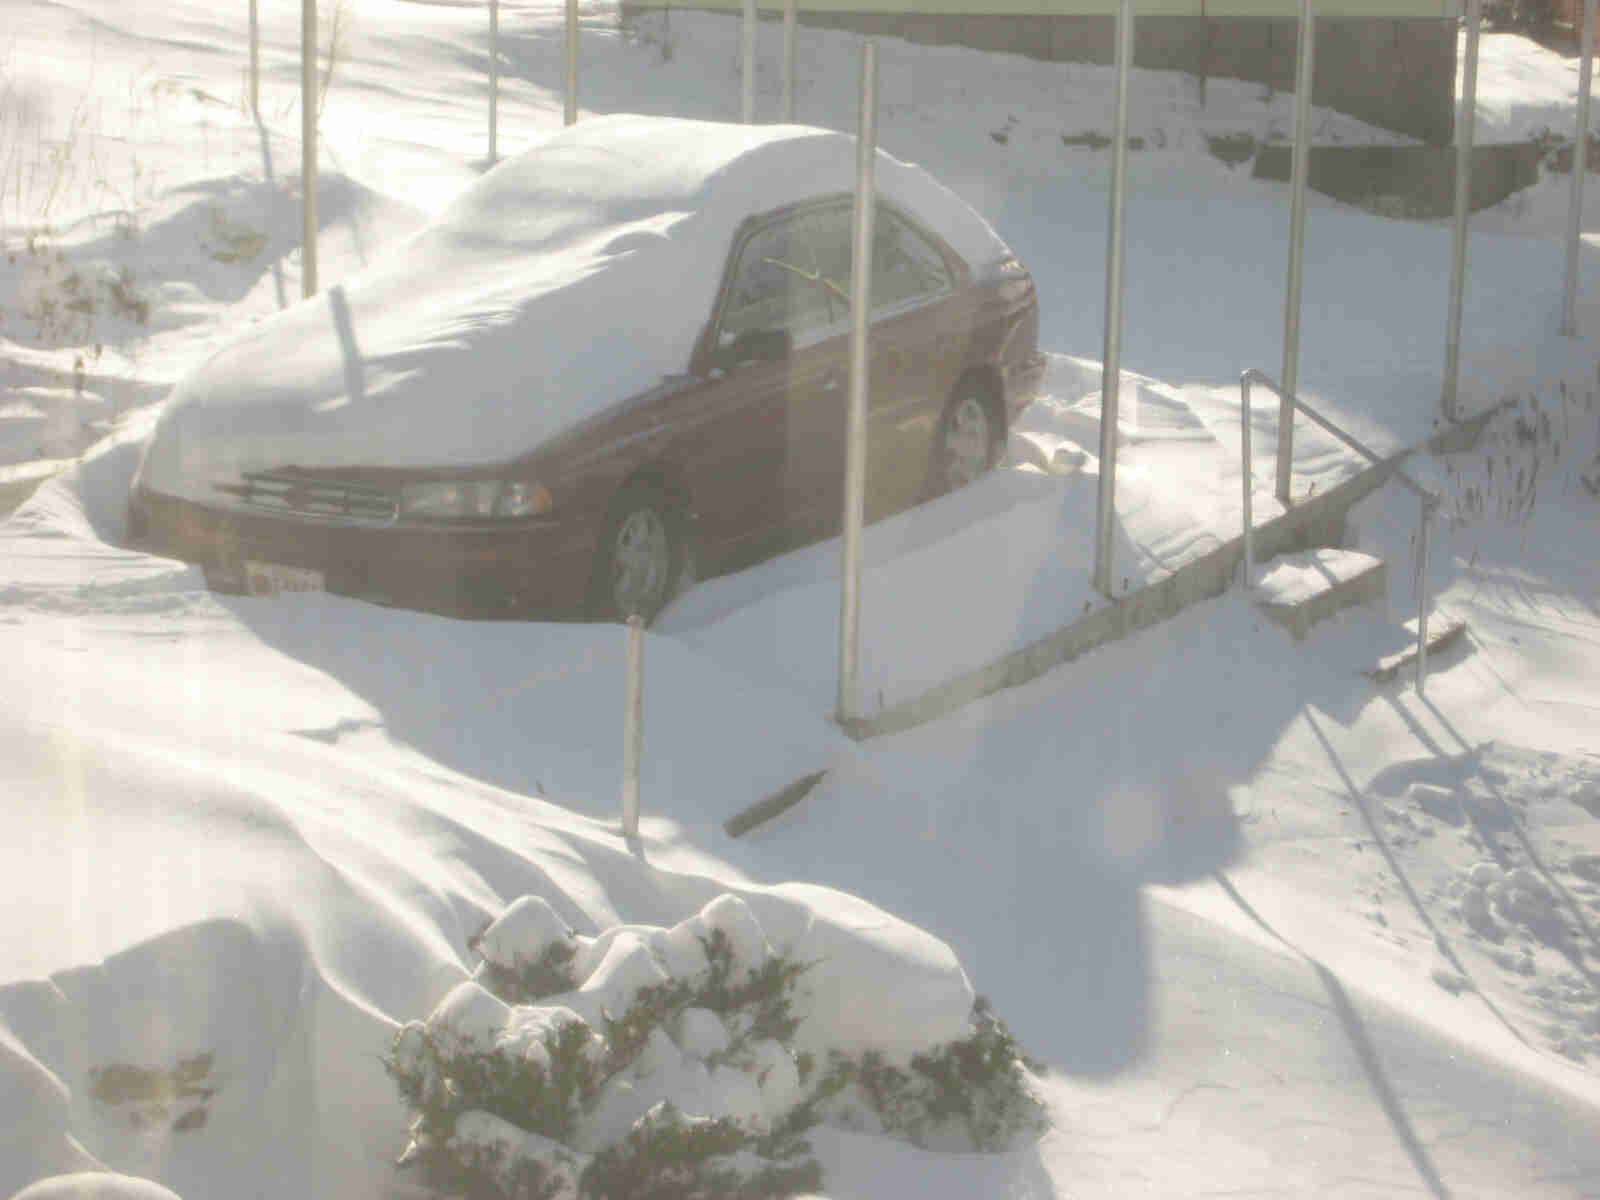 Downward view of a red car buried in deep snow